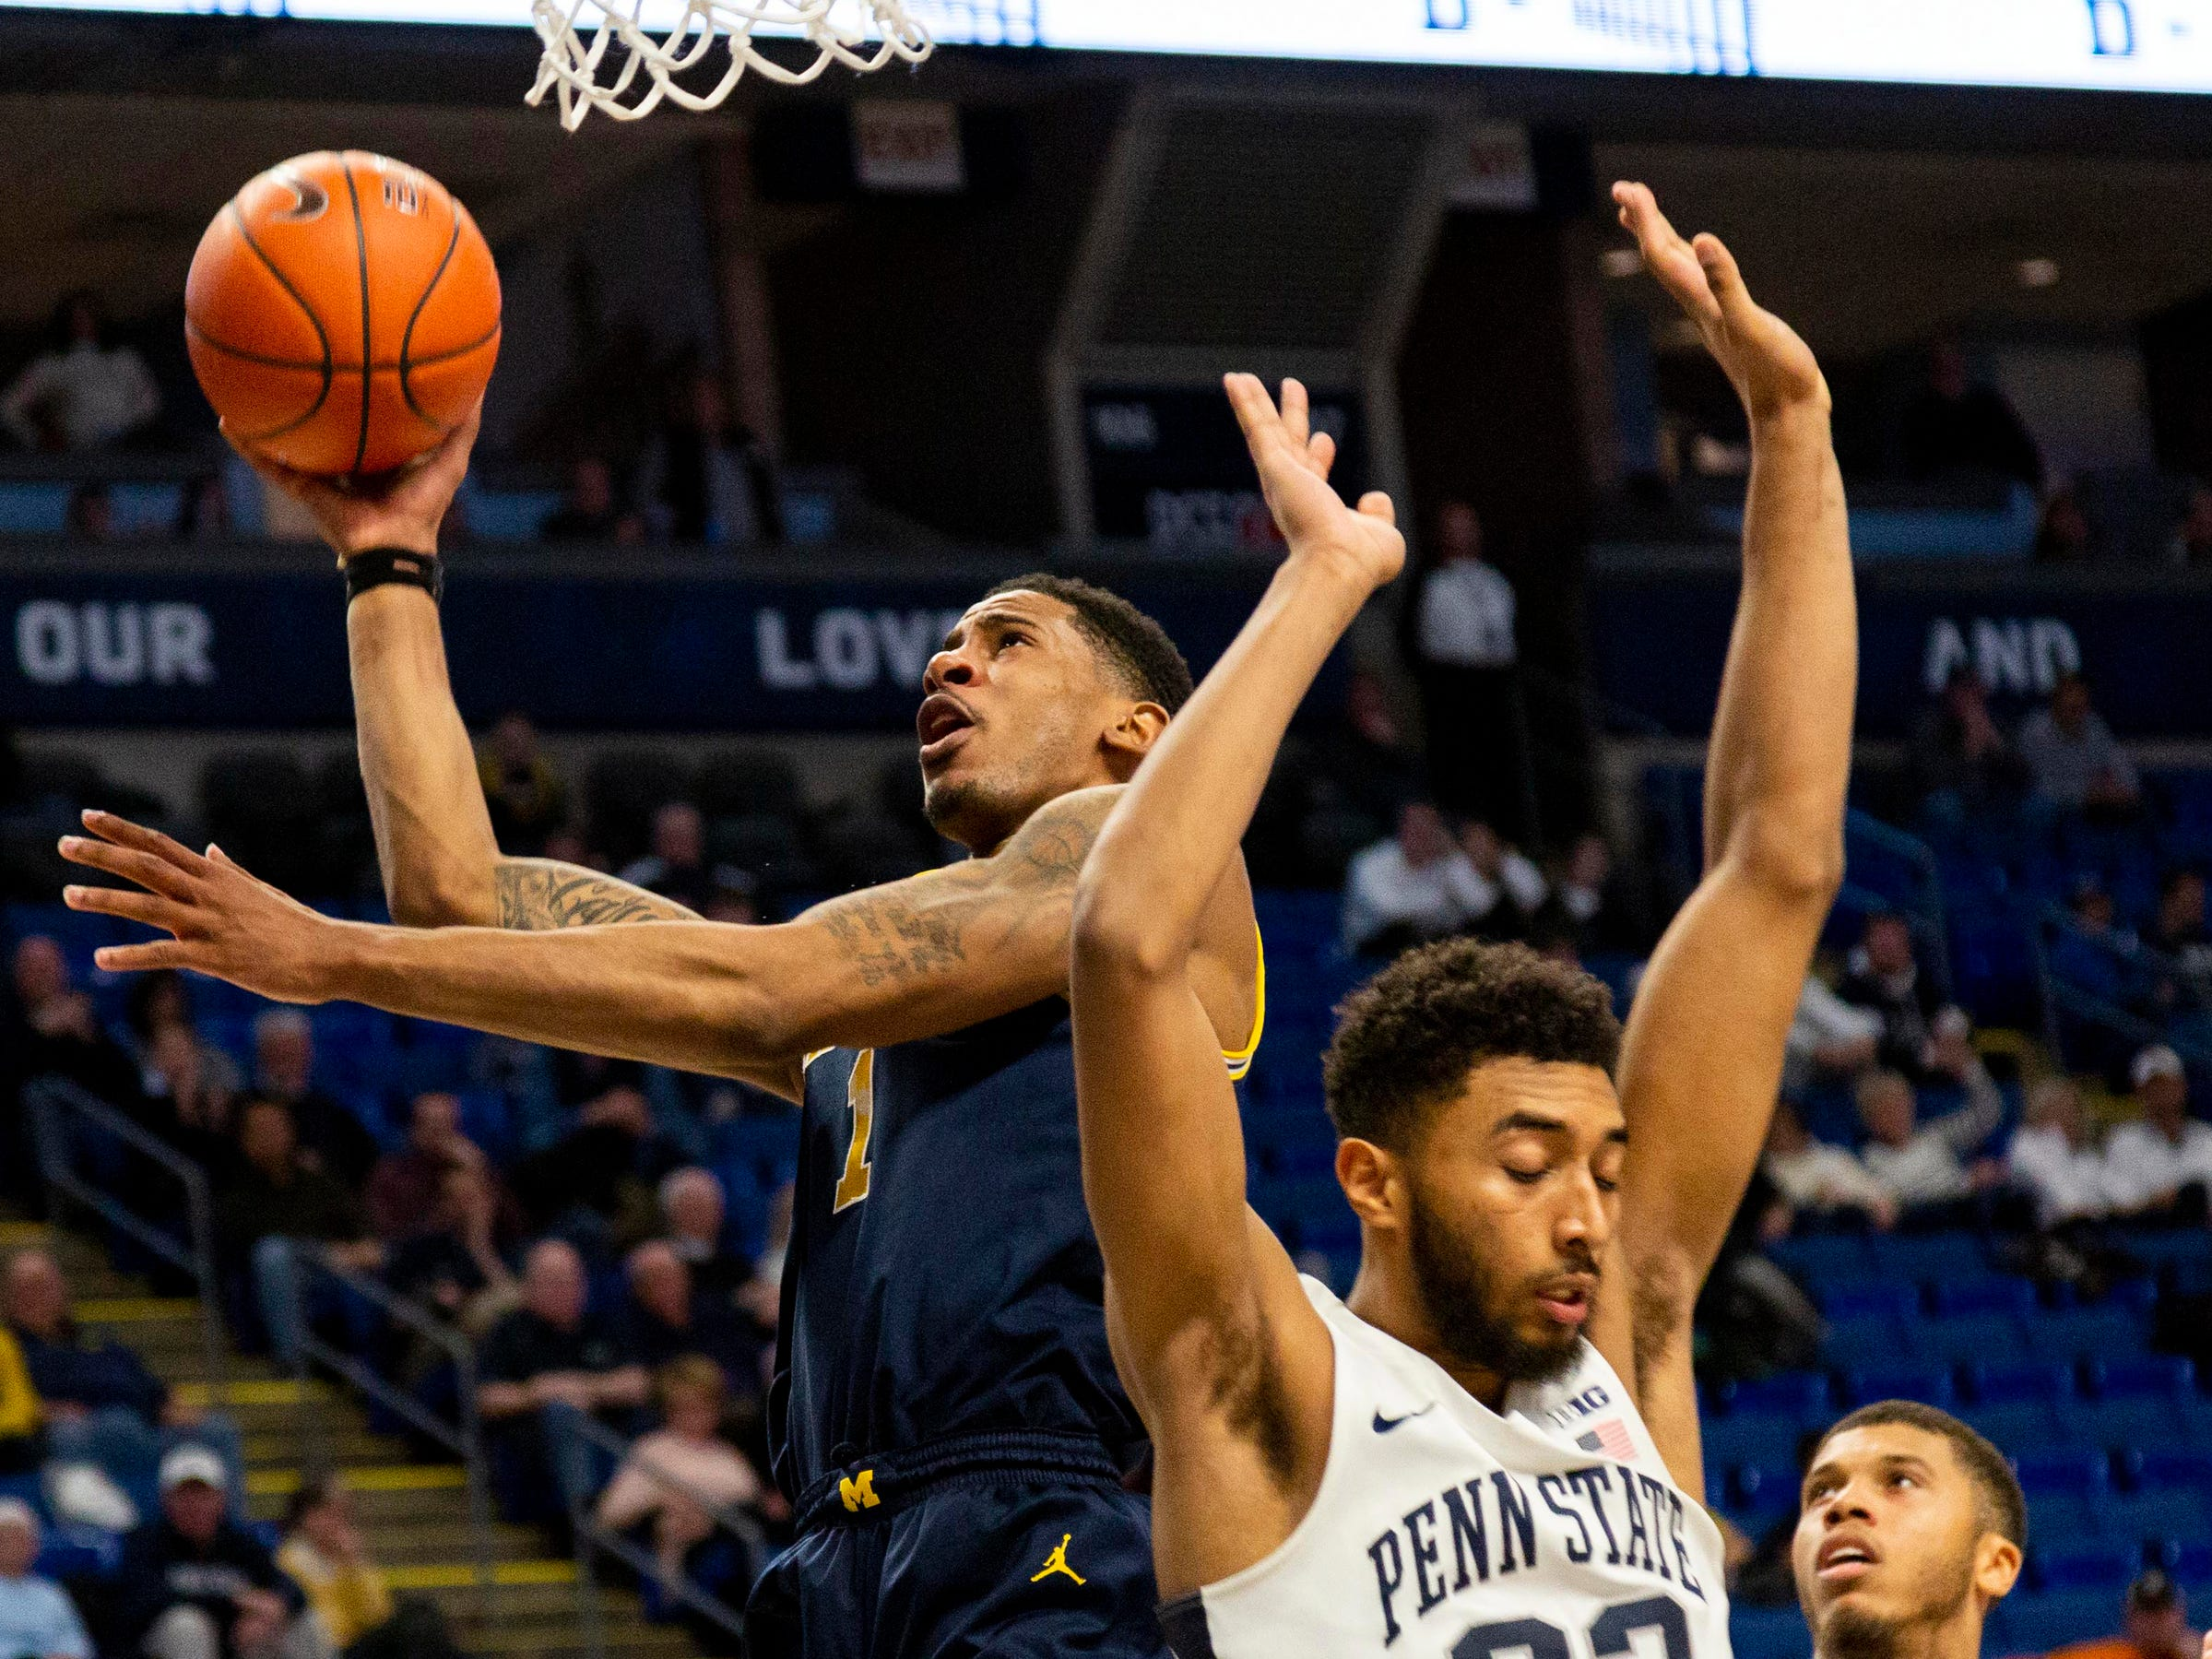 Michigan's Charles Matthews shoots over Penn State's Josh Reaves during the second half Tuesday, Feb. 12, 2019, in State College, Pa.